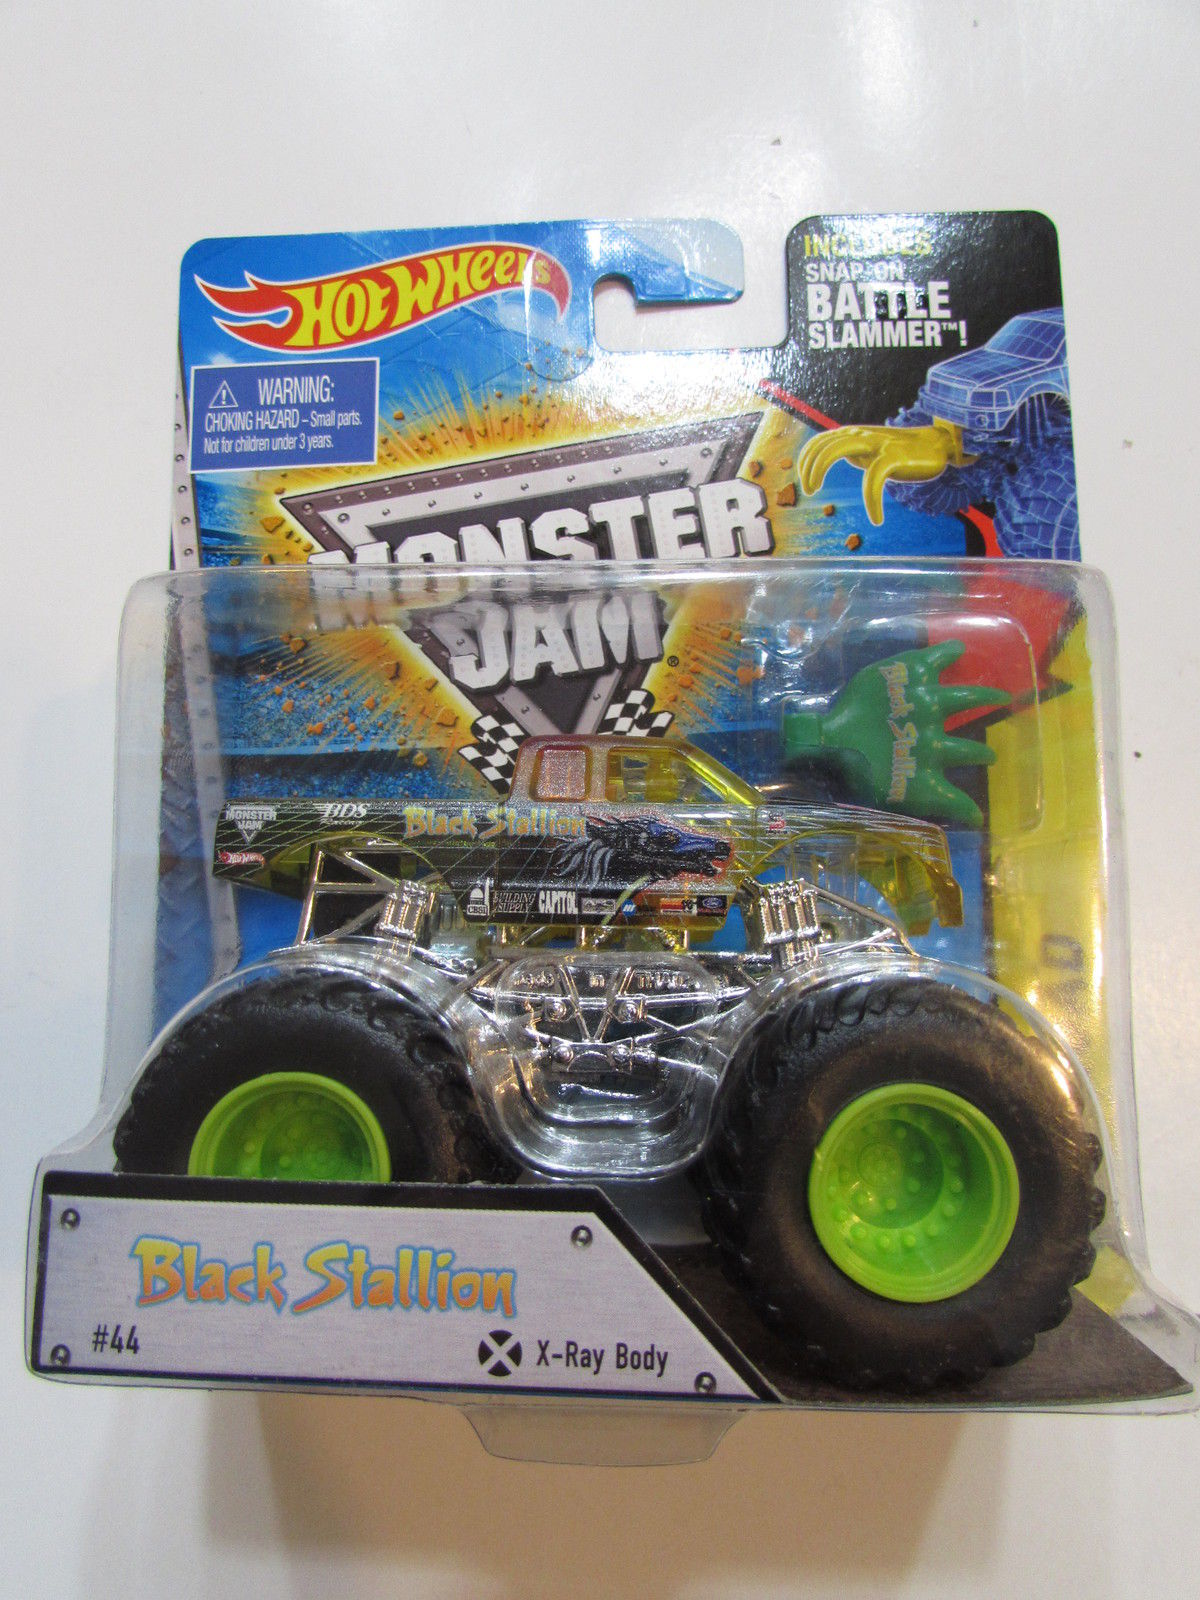 HOT WHEEL MONSTER JAM BLACK STALLION #44 INCLUDES SNAP - ON BATTLE SLAMMER